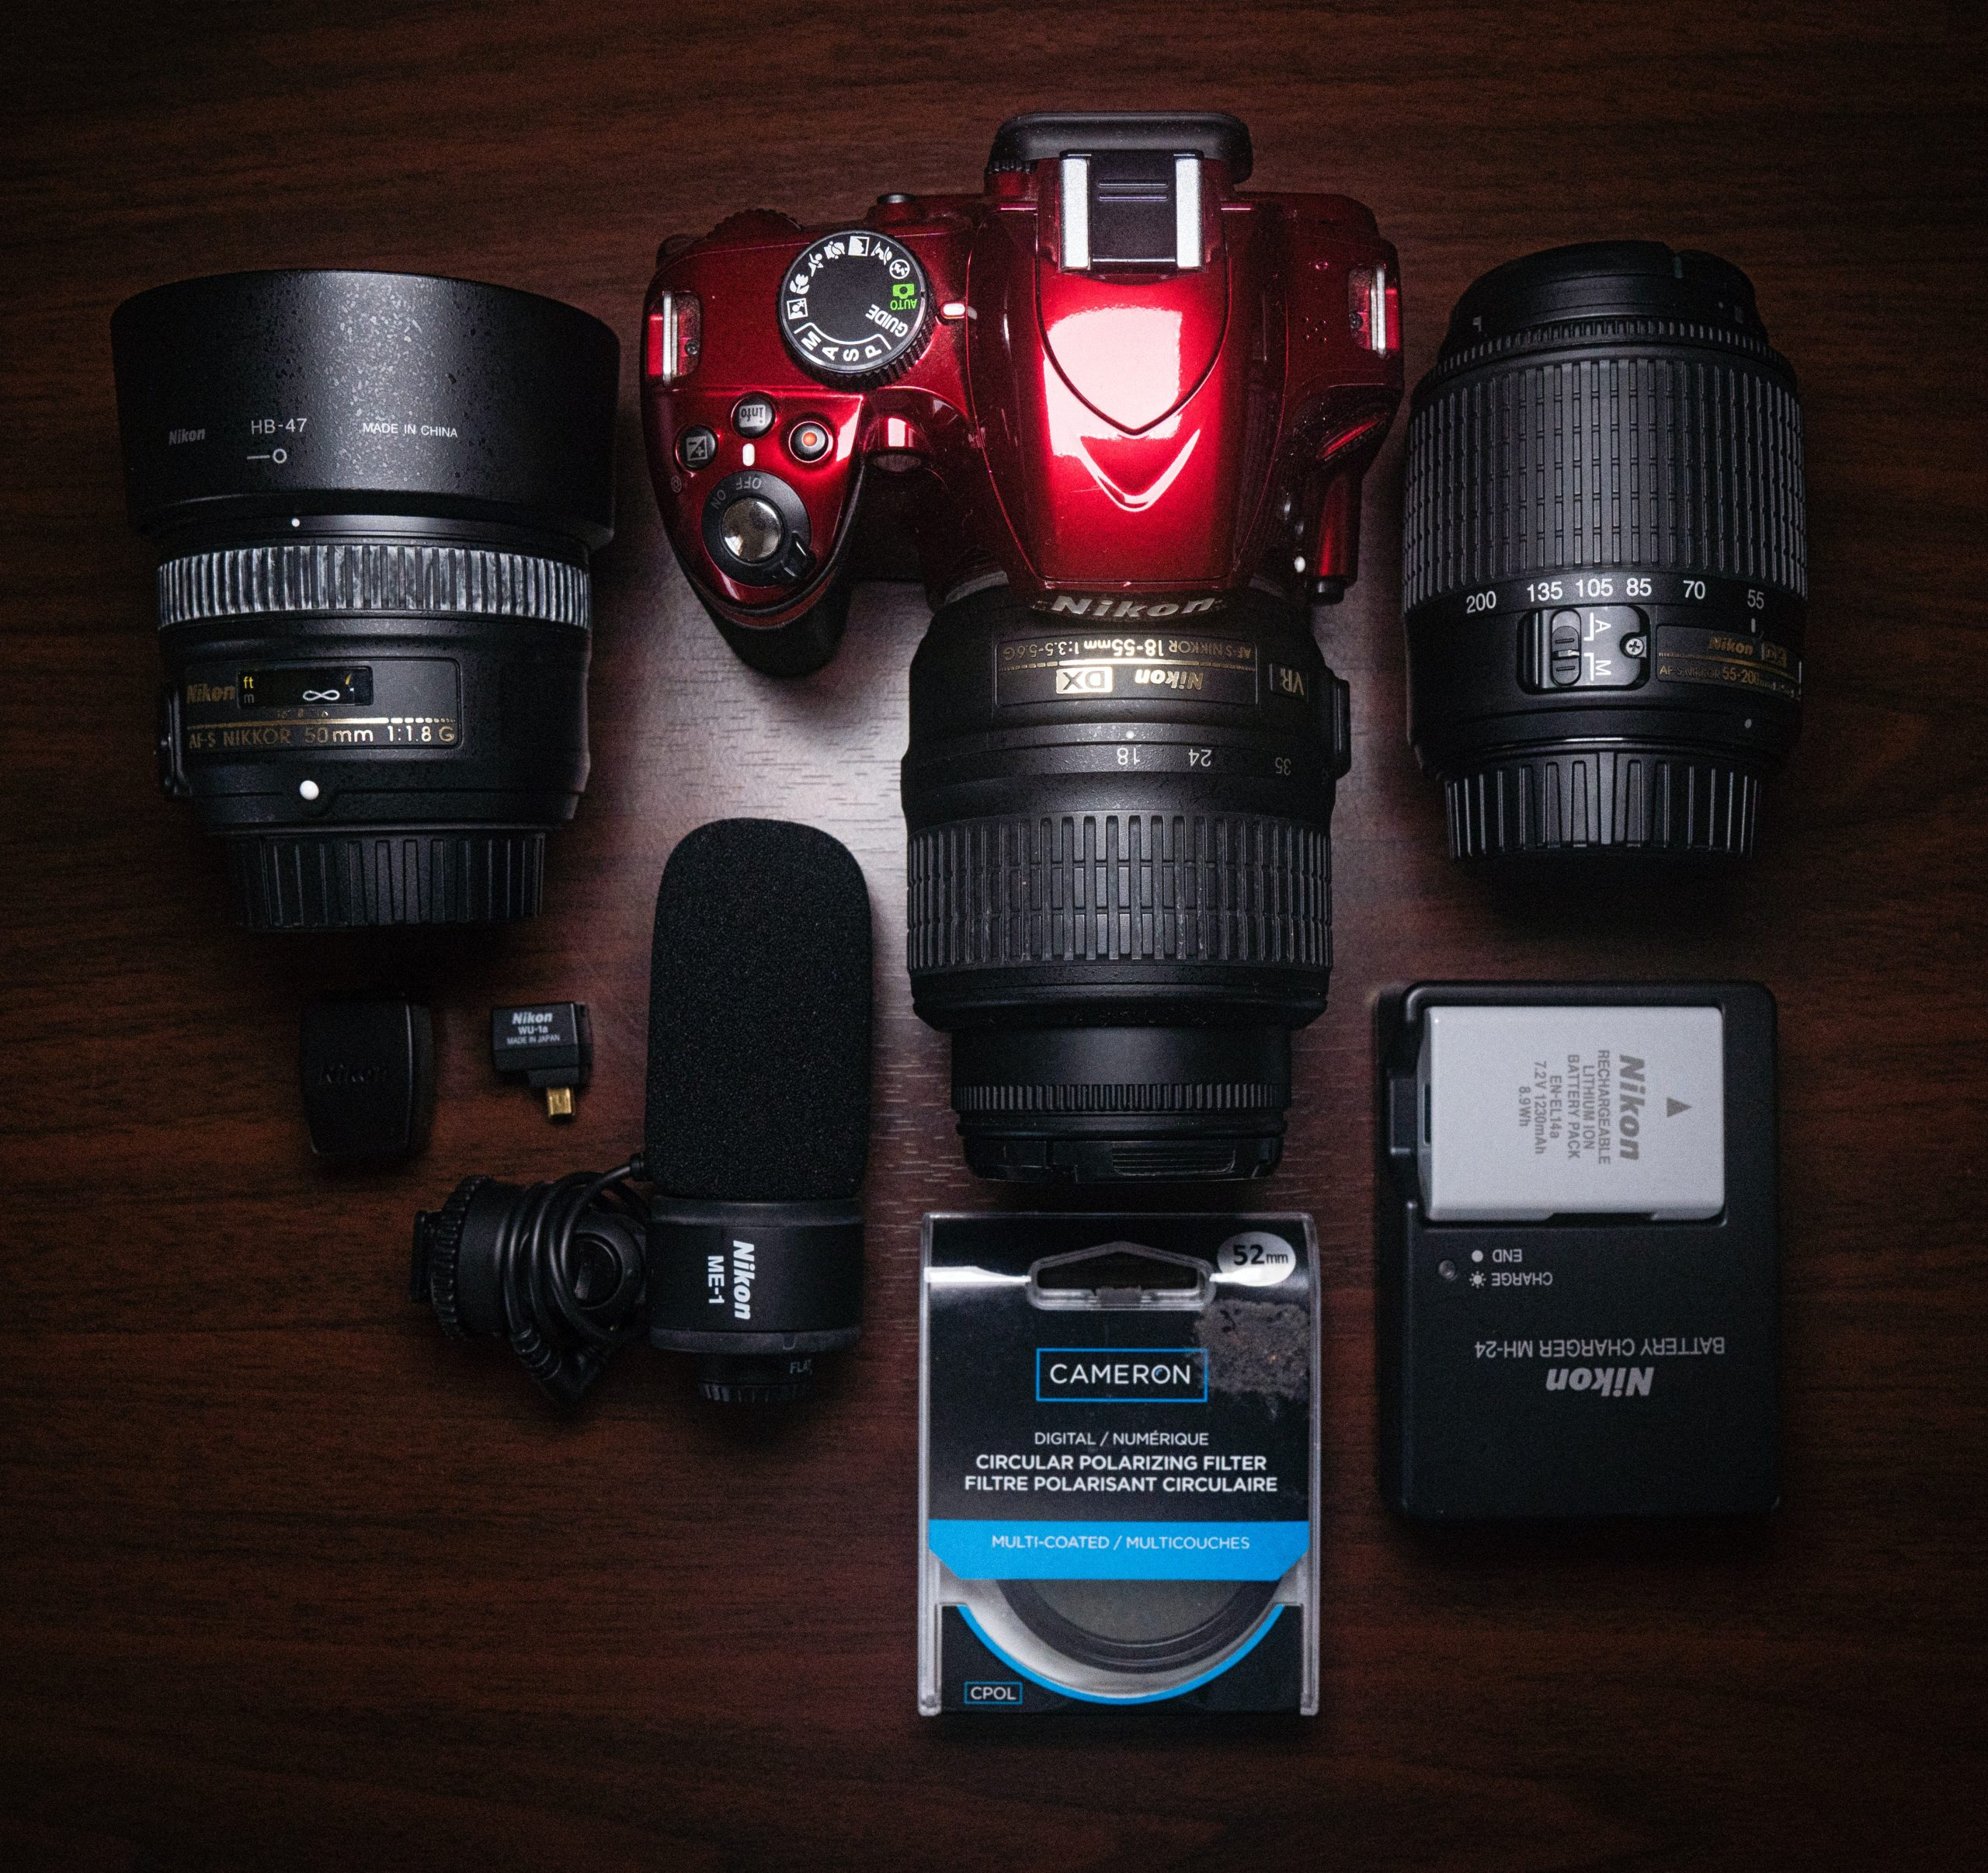 Amazing Things To Buy In Atlantic City-Cameras and Rechargeable Gadgets